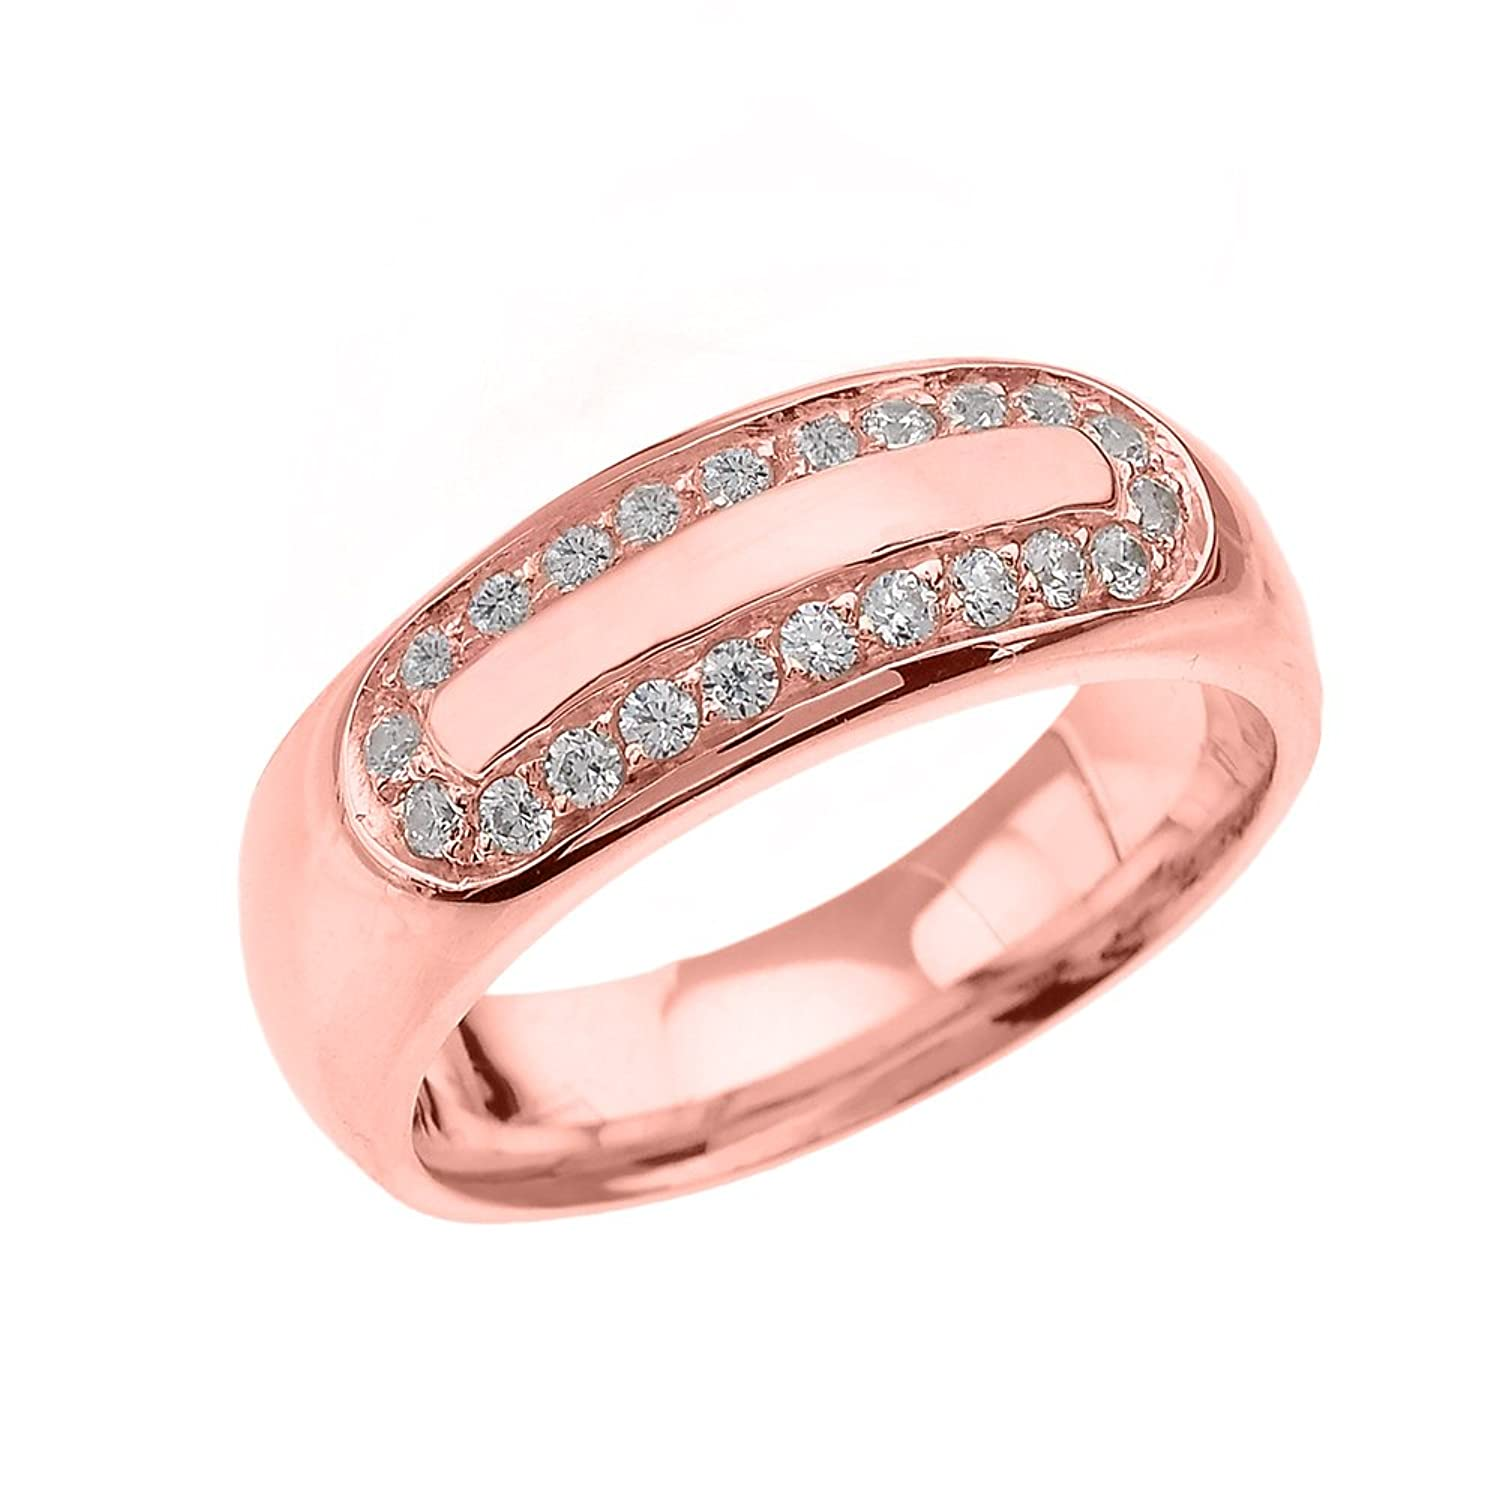 Men\'s 10k Rose Gold Diamond Comfort Fit Wedding Band Ring|Amazon.com